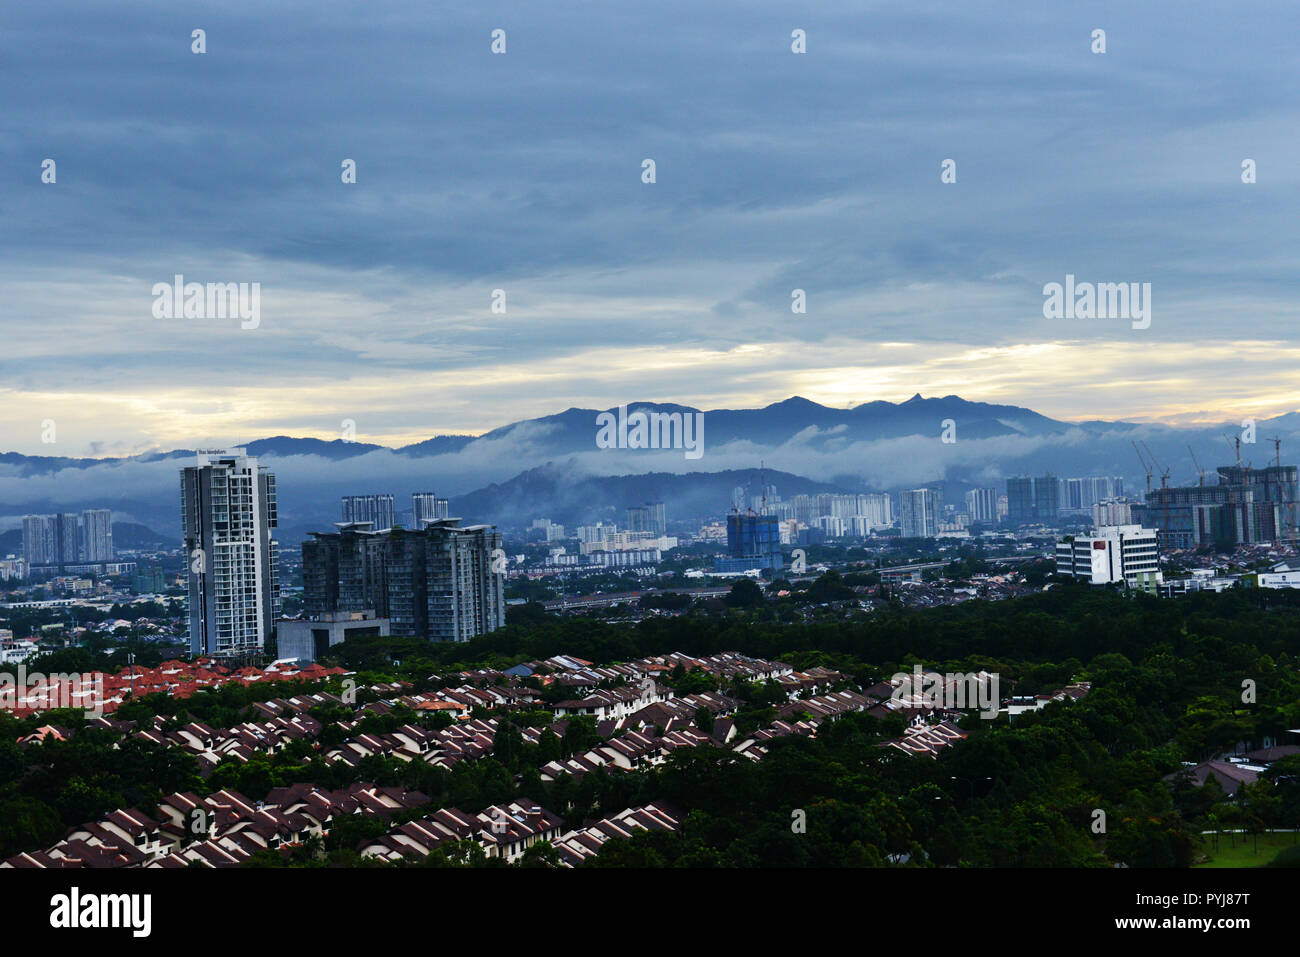 KL morning view with a fog along the mountains. - Stock Image